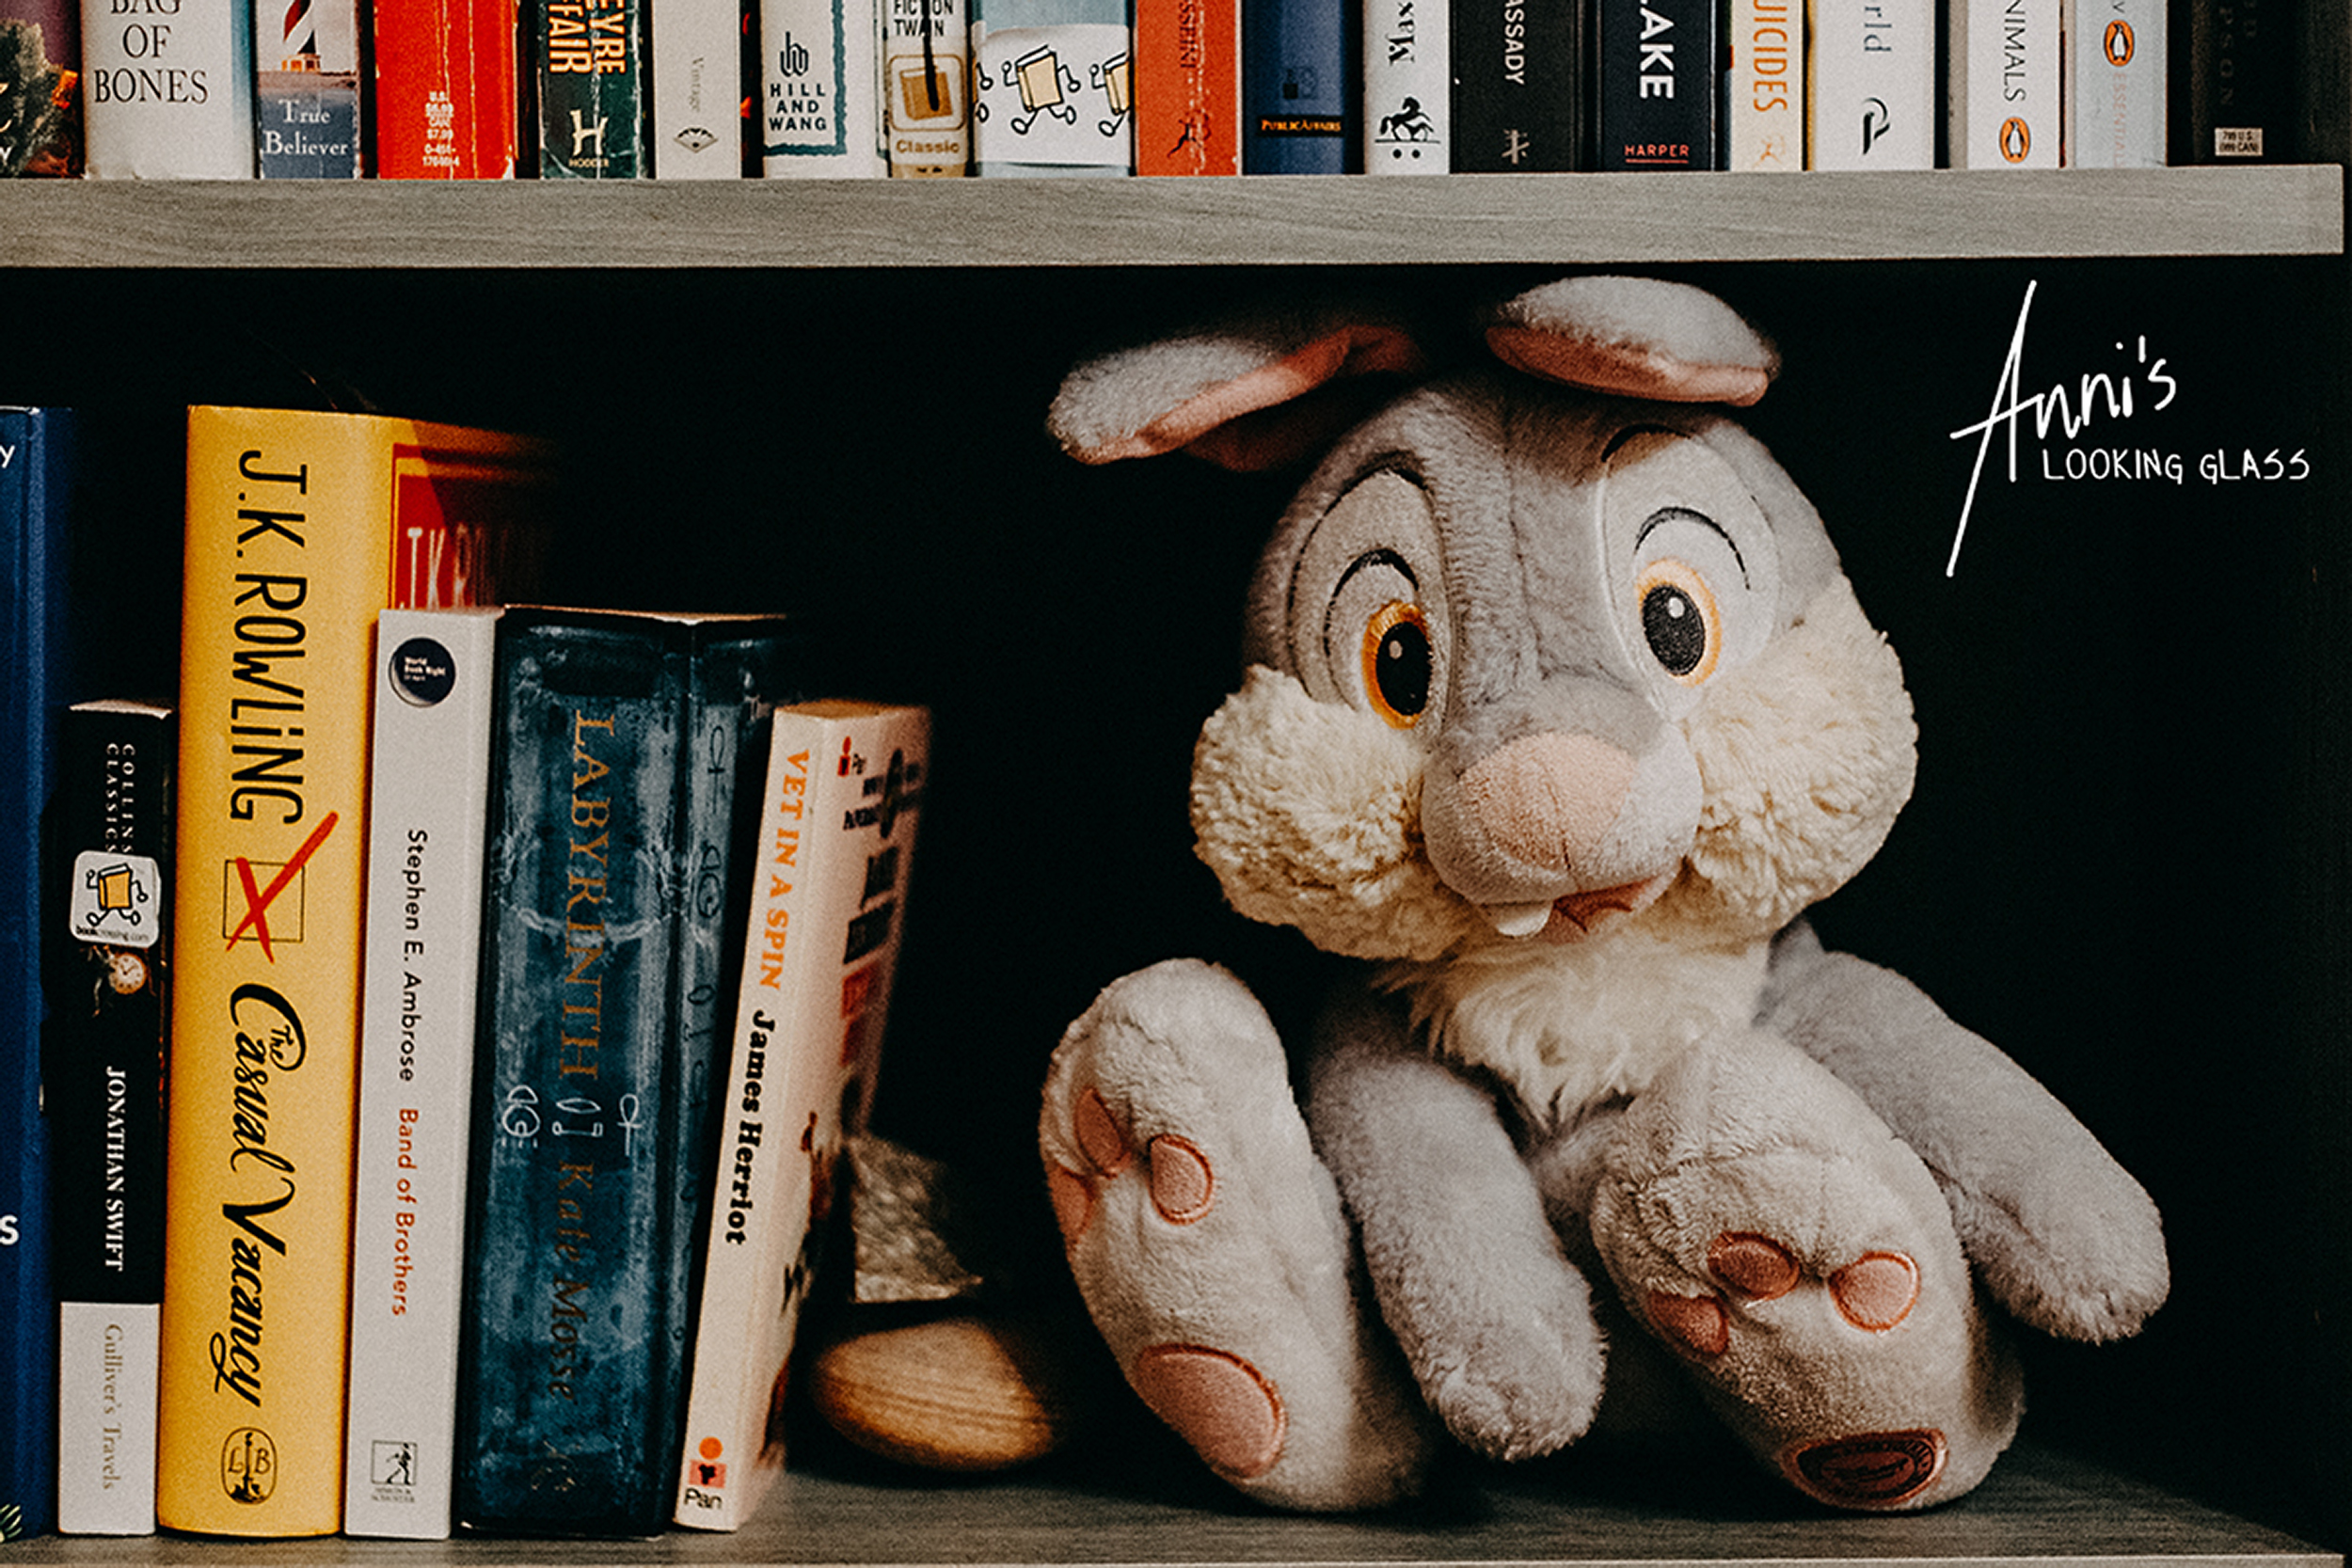 A stuffed toy of Thumper the rabbit sitting in a bookshelf